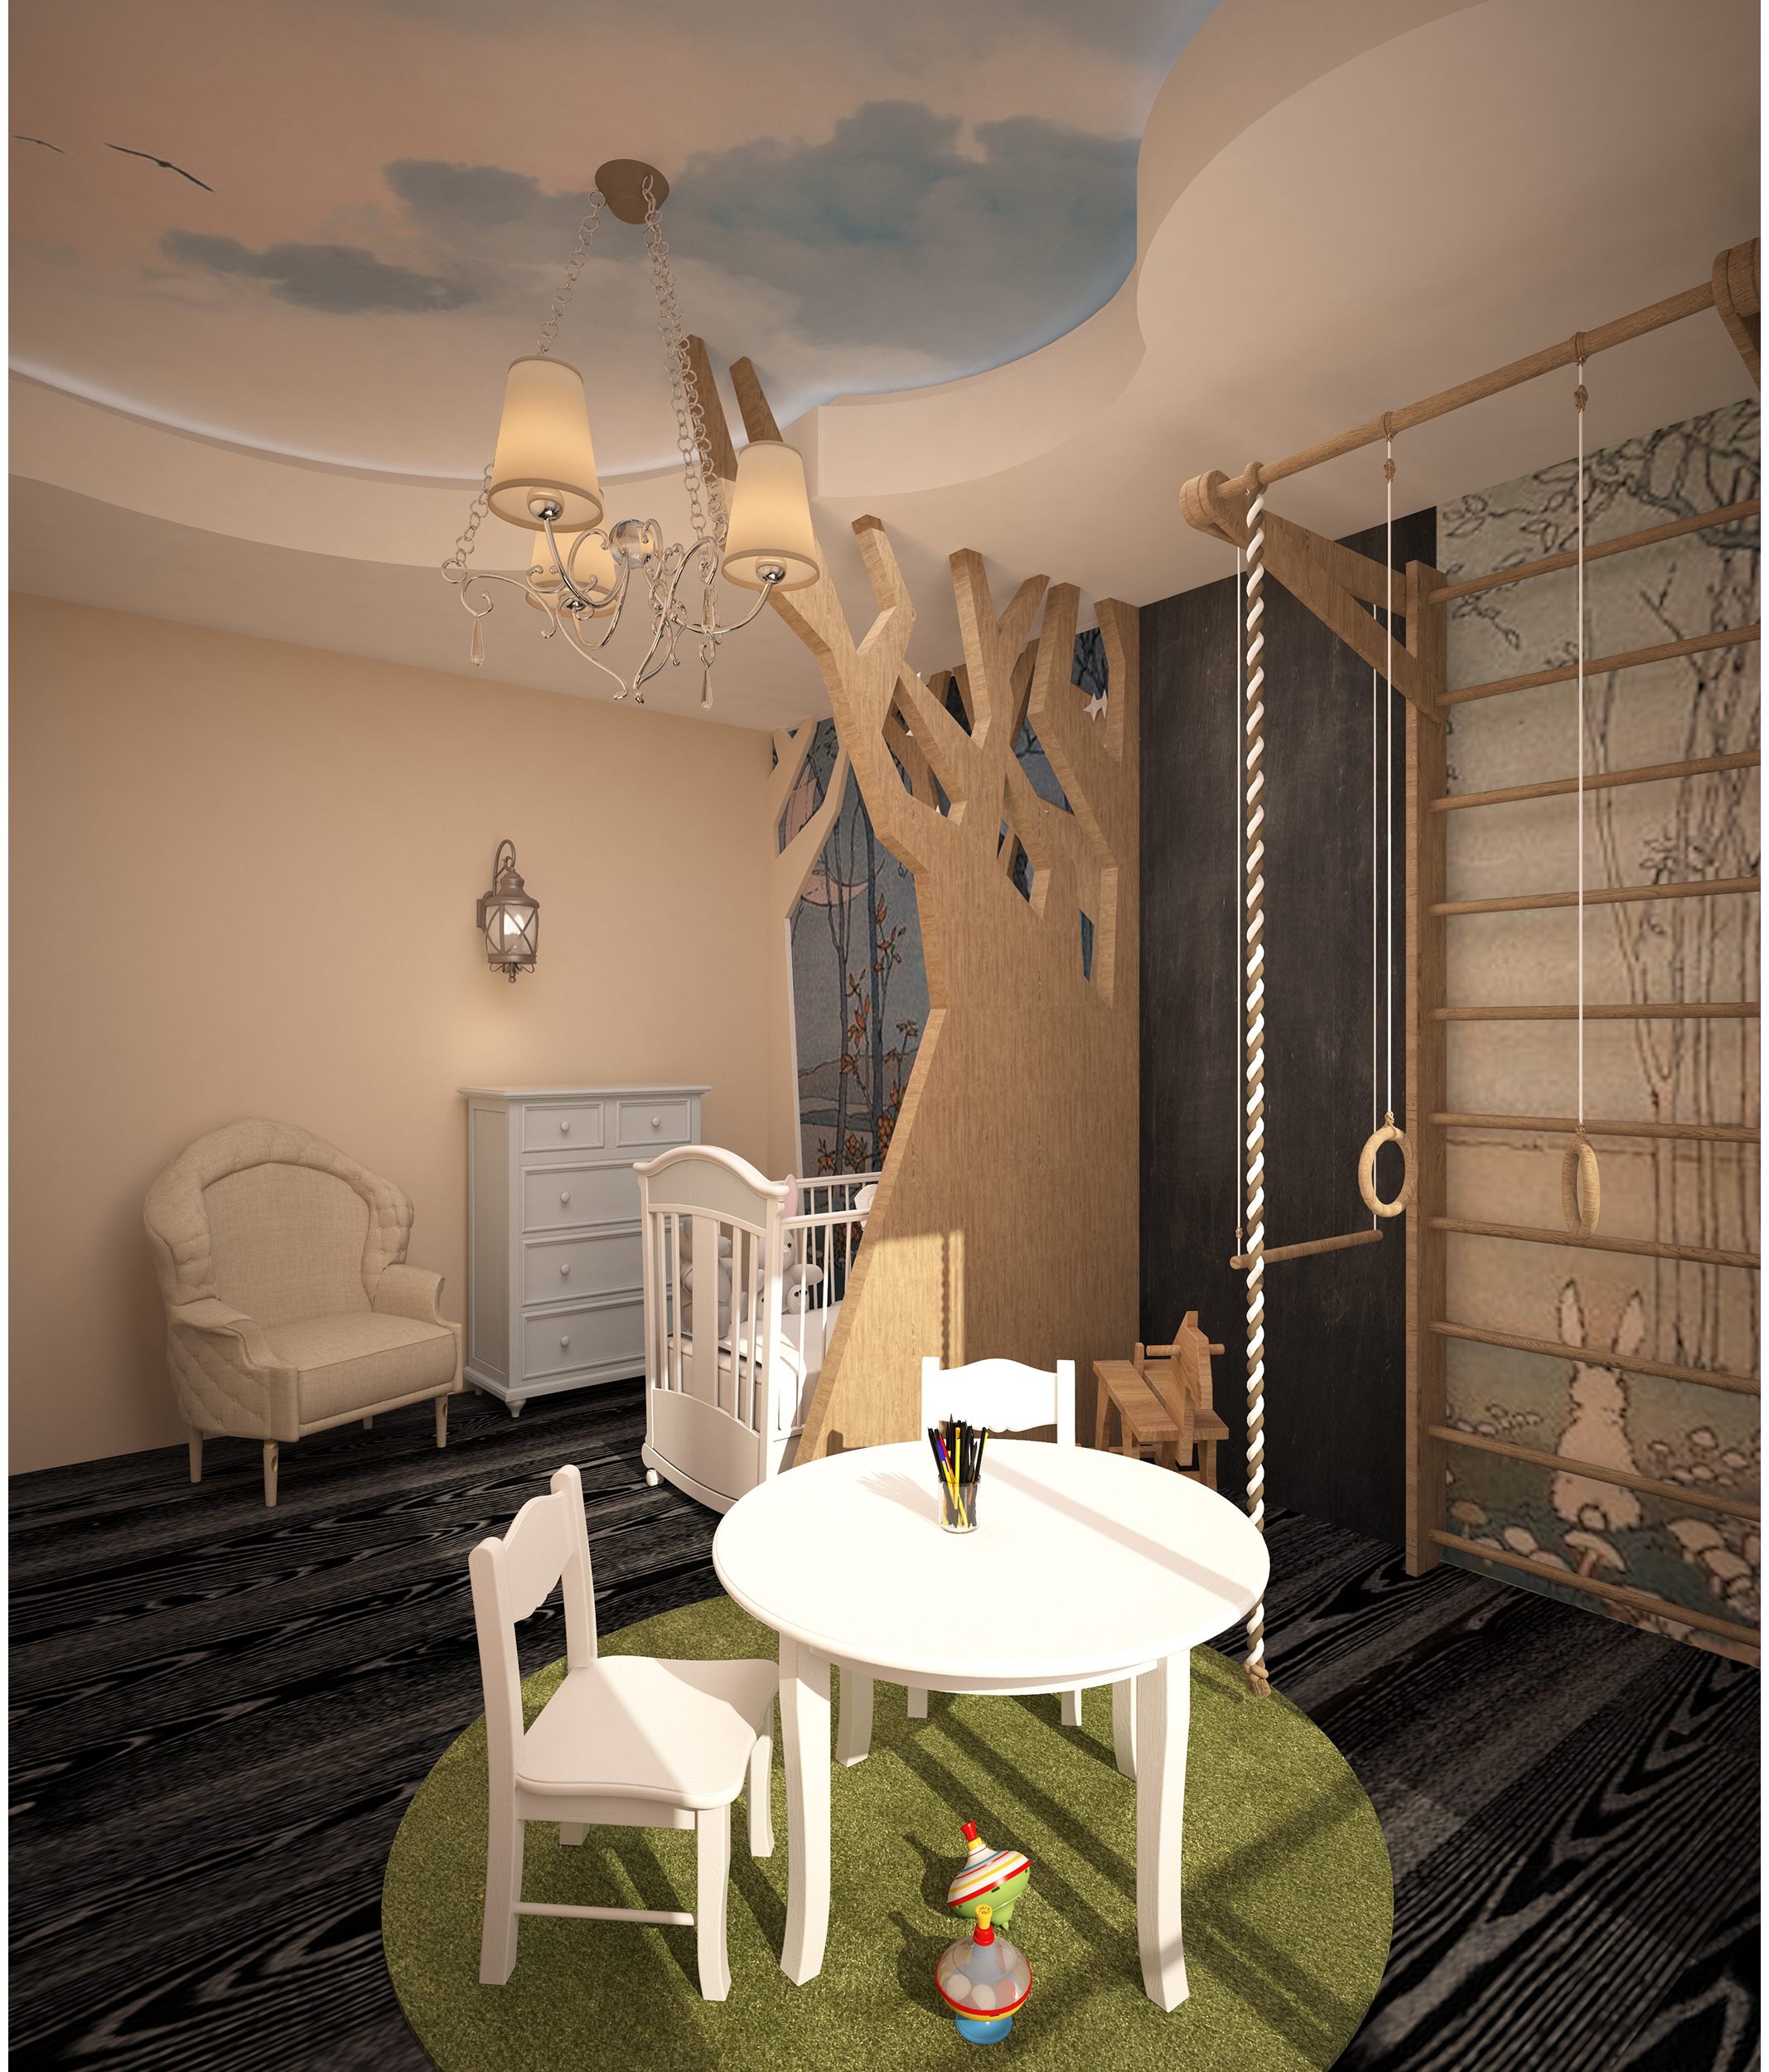 Nursery interior. Suspended ceiling in the shape of clouds.